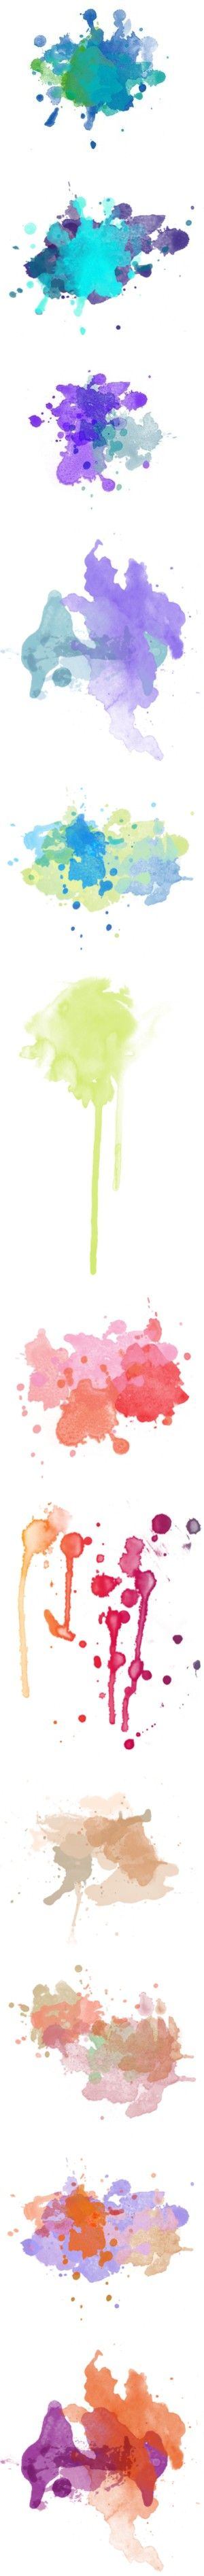 Ink Spalshes by sylandrya on Polyvore featuring splashes, fillers, polypaint, backgrounds, paint splashes, effects, paint, textures, embellishments and doodles: